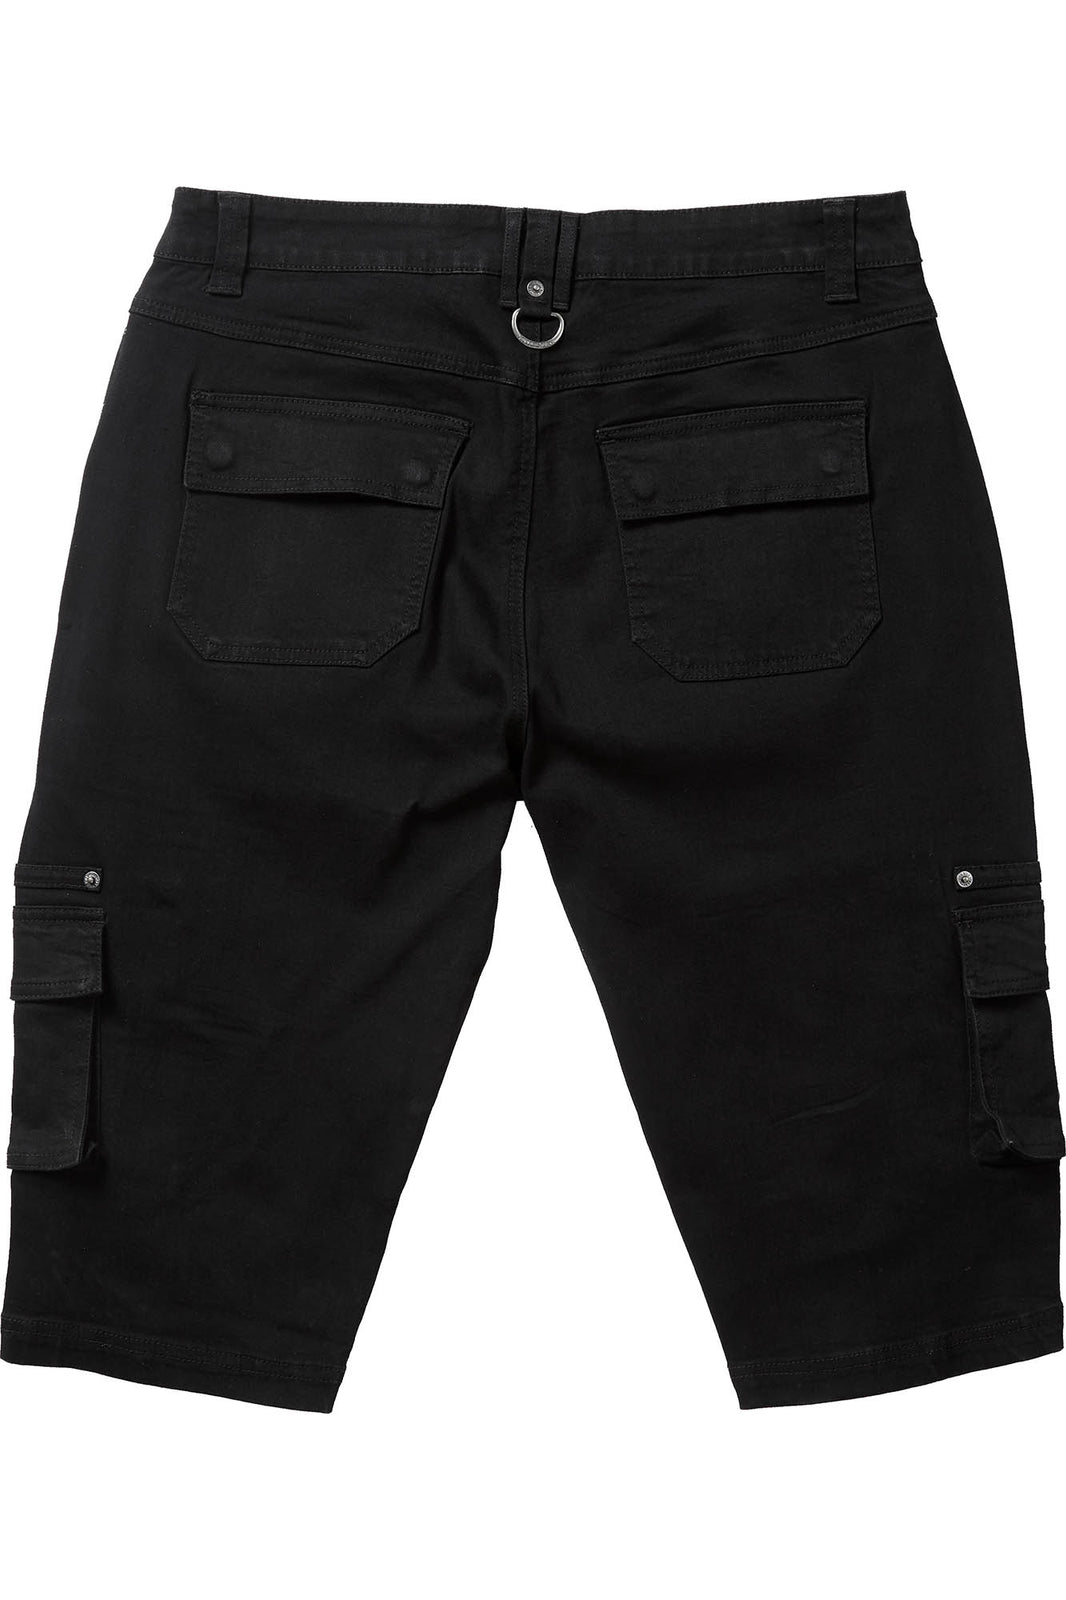 Twisted Cargo Shorts [B]